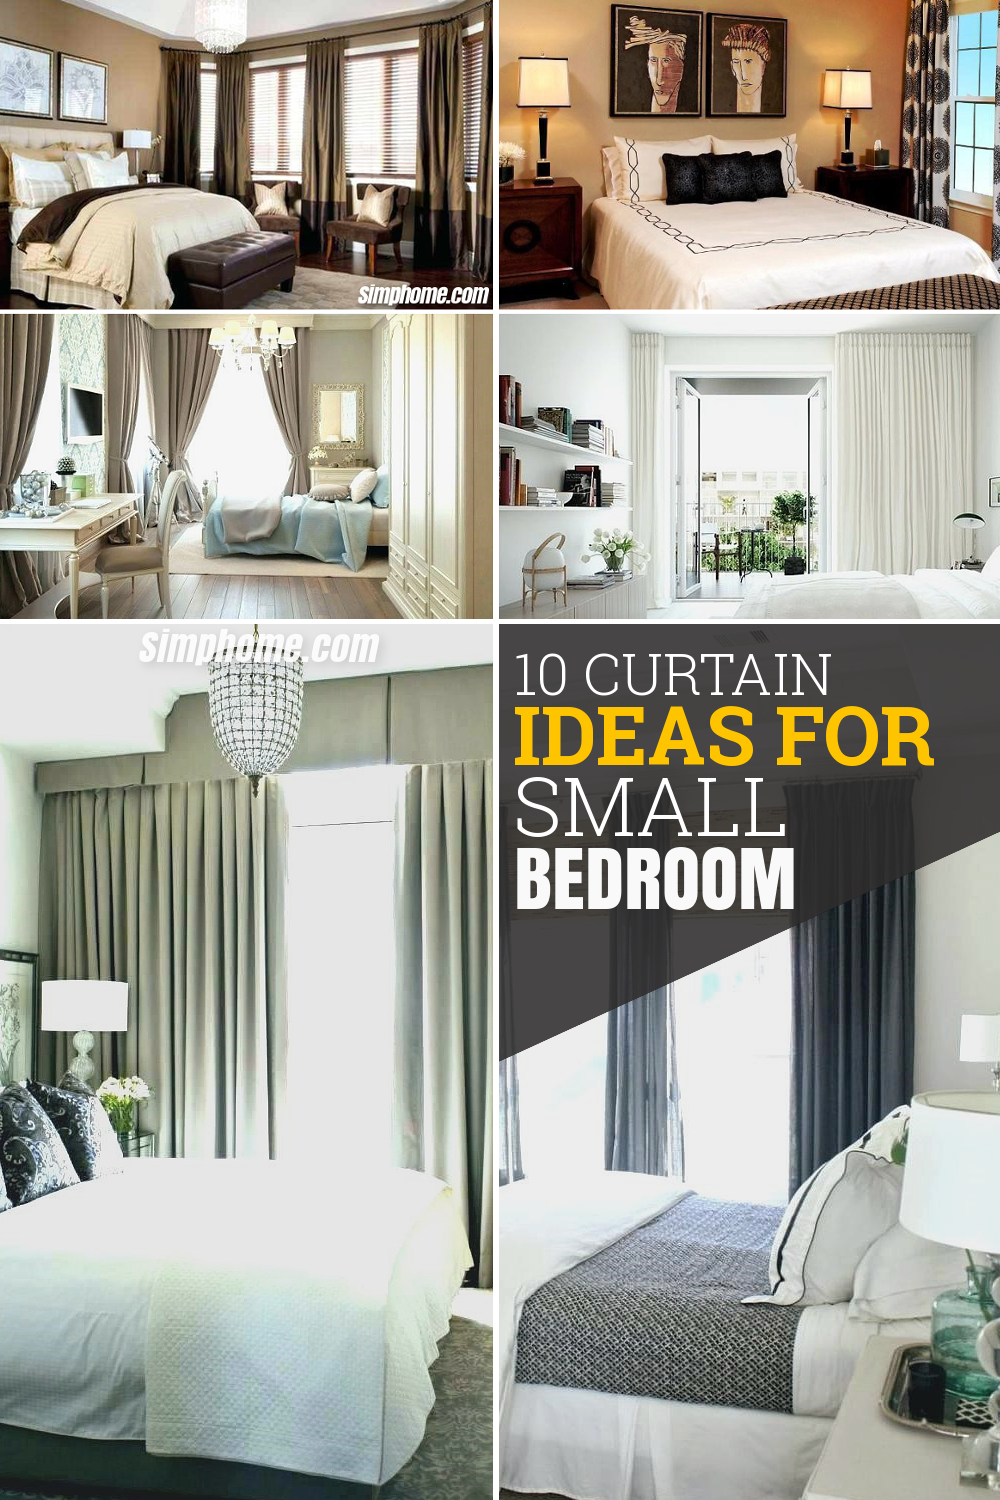 10 Curtain Ideas for Small Bedroom via Simphome com pintrerest image